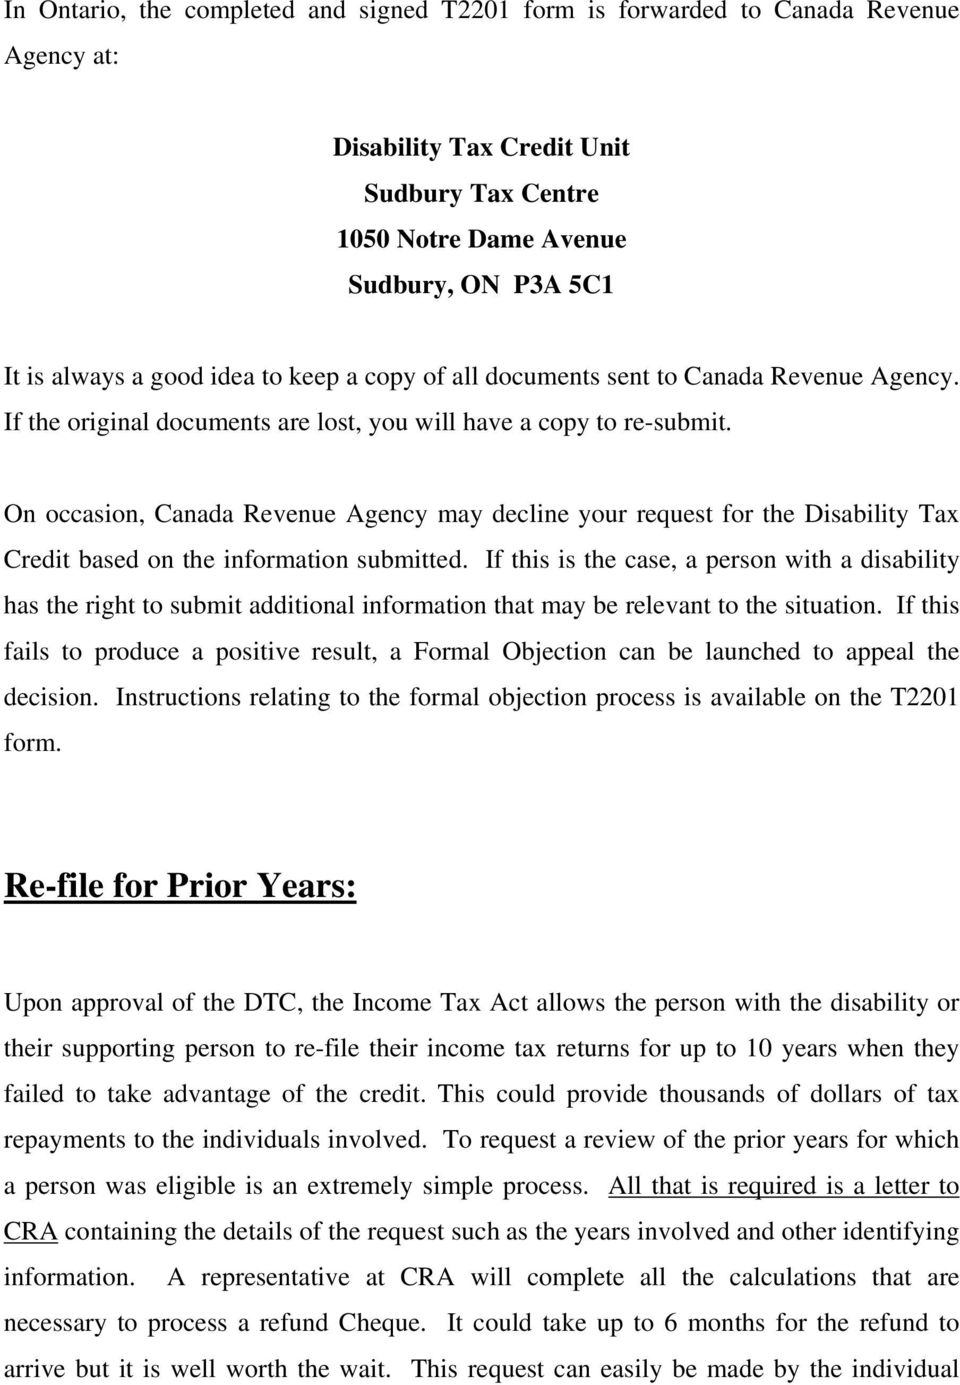 On ccasin, Canada Revenue Agency may decline yur request fr the Disability Tax Credit based n the infrmatin submitted.